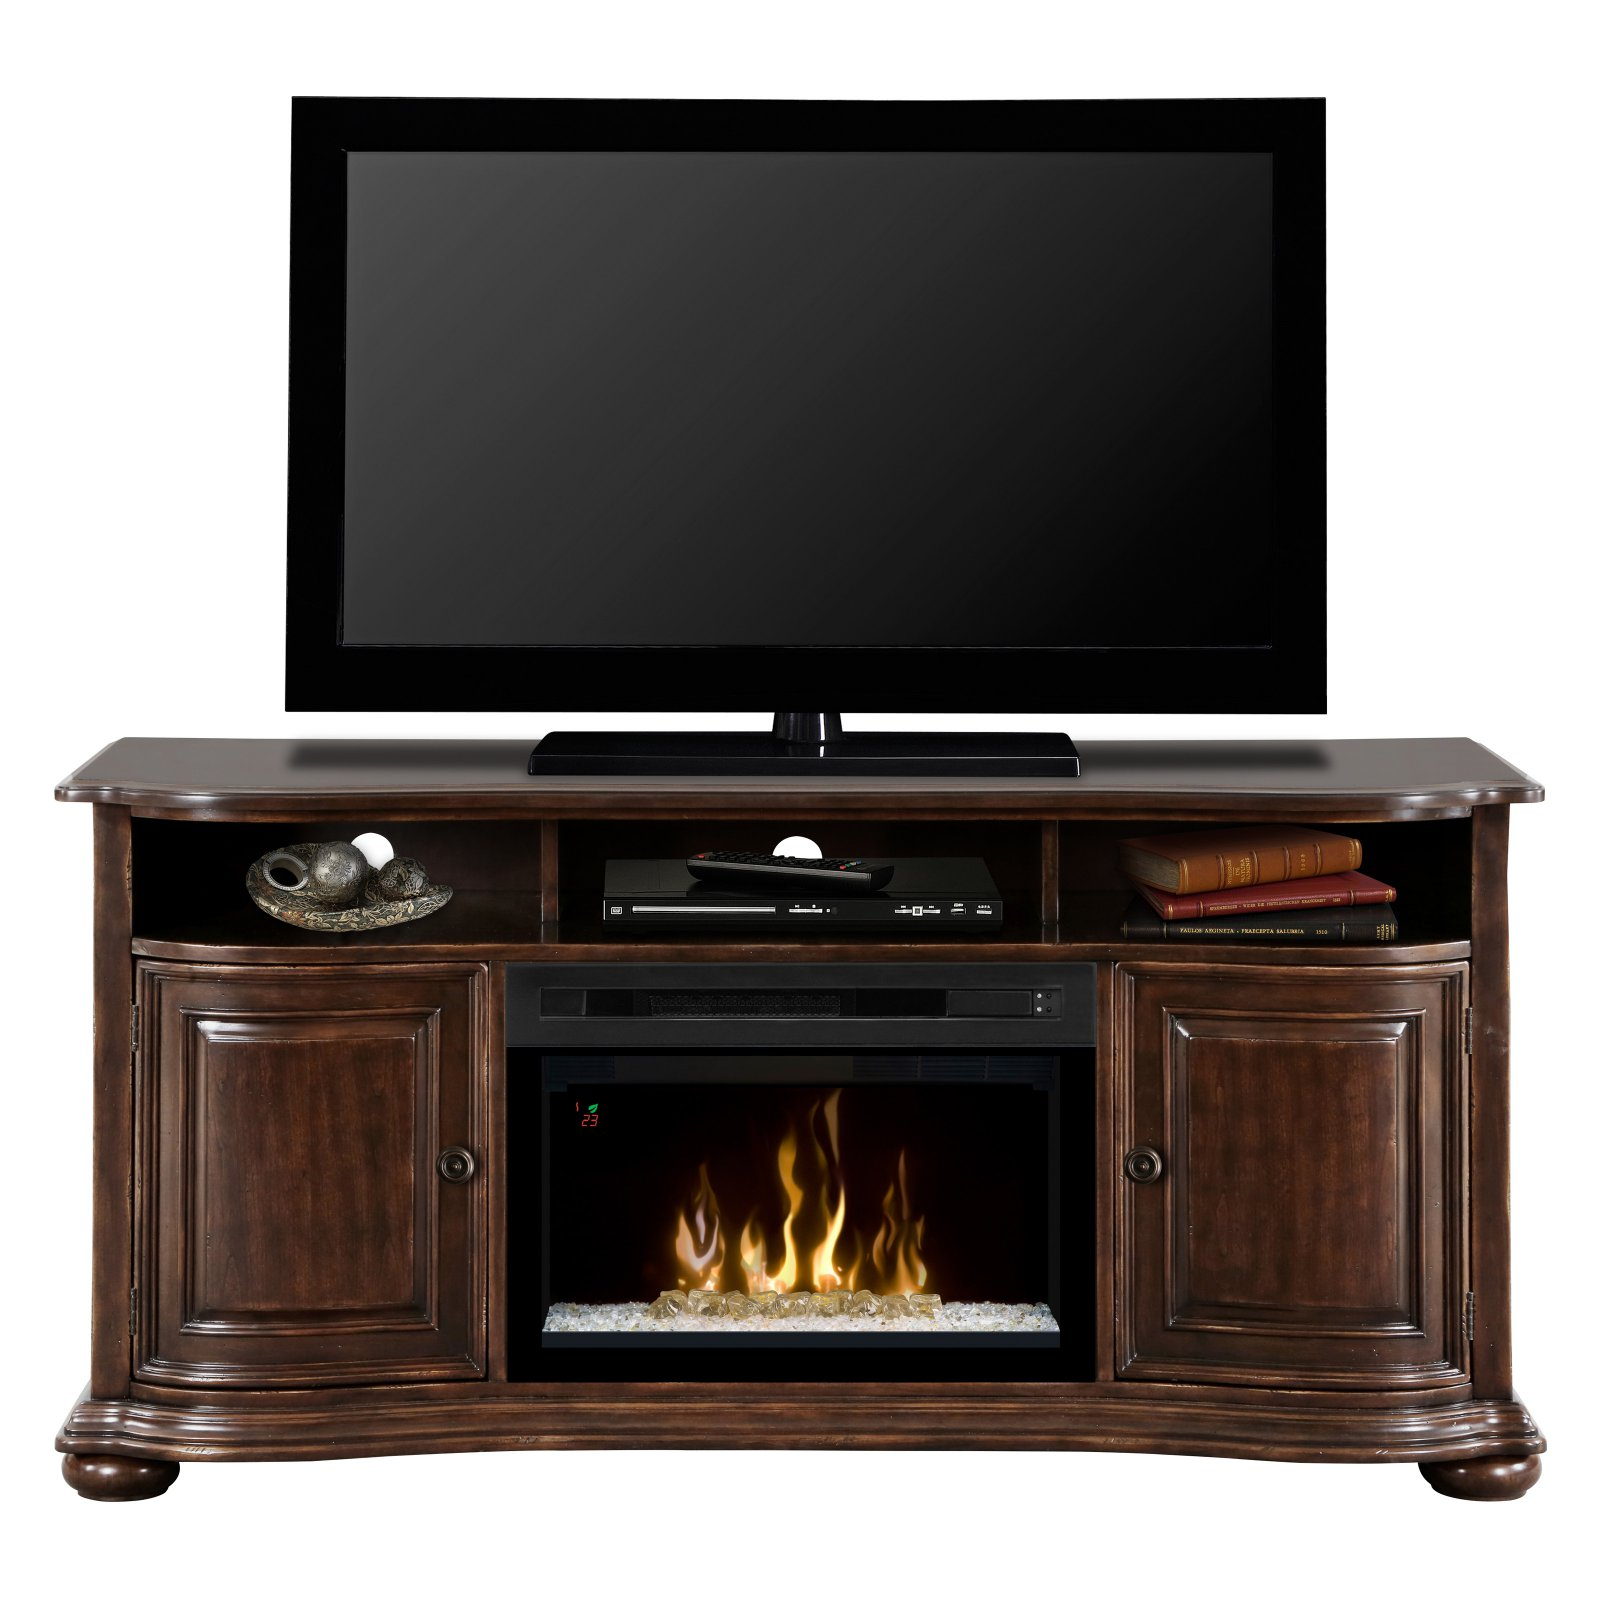 "Dimplex Henderson Media Console Electric Fireplace With Acrylic Ember Bed for TVs up to 65"", Deep Cherry"